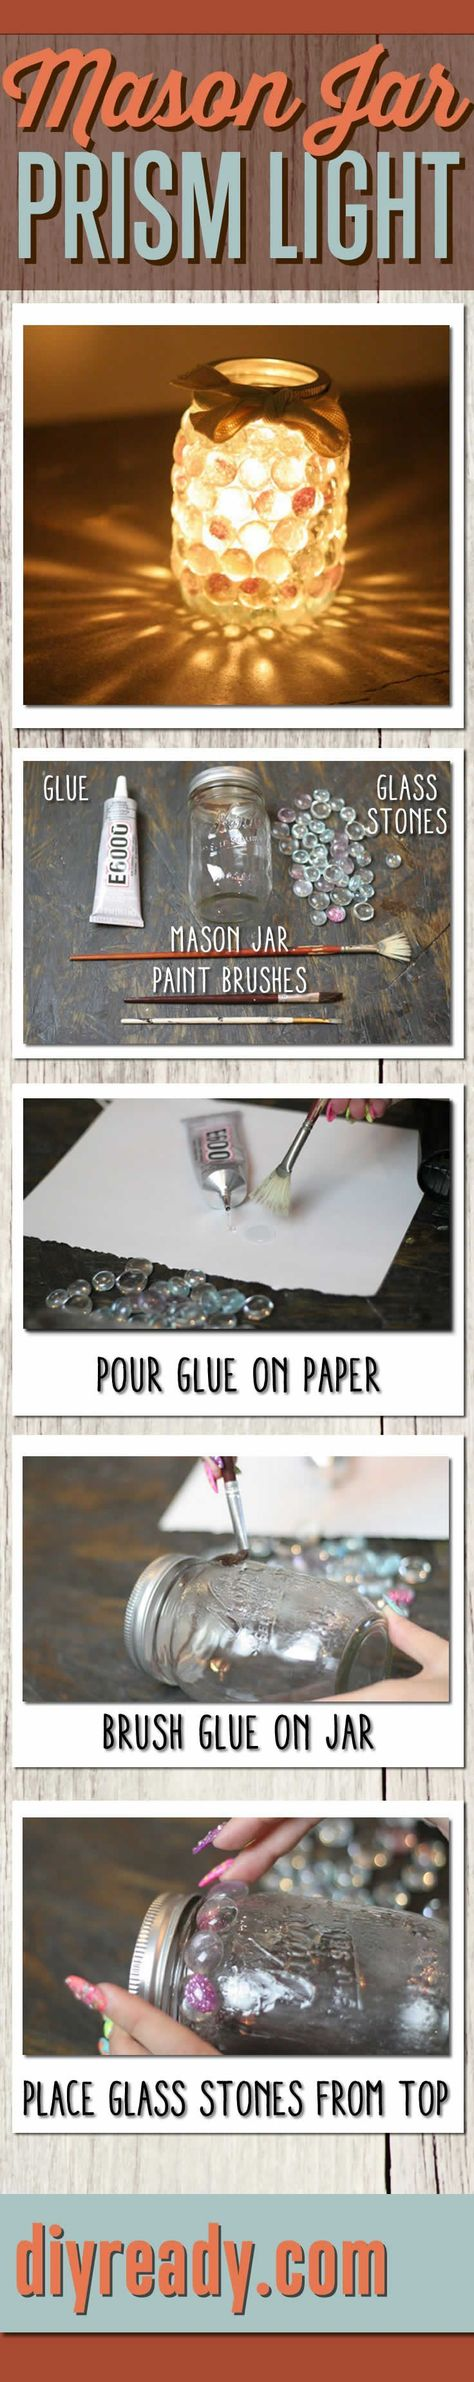 Mason Jar Crafts! Easy DIY Prism Light http://diyready.com/mason-jar-crafts-prism-candle-light/